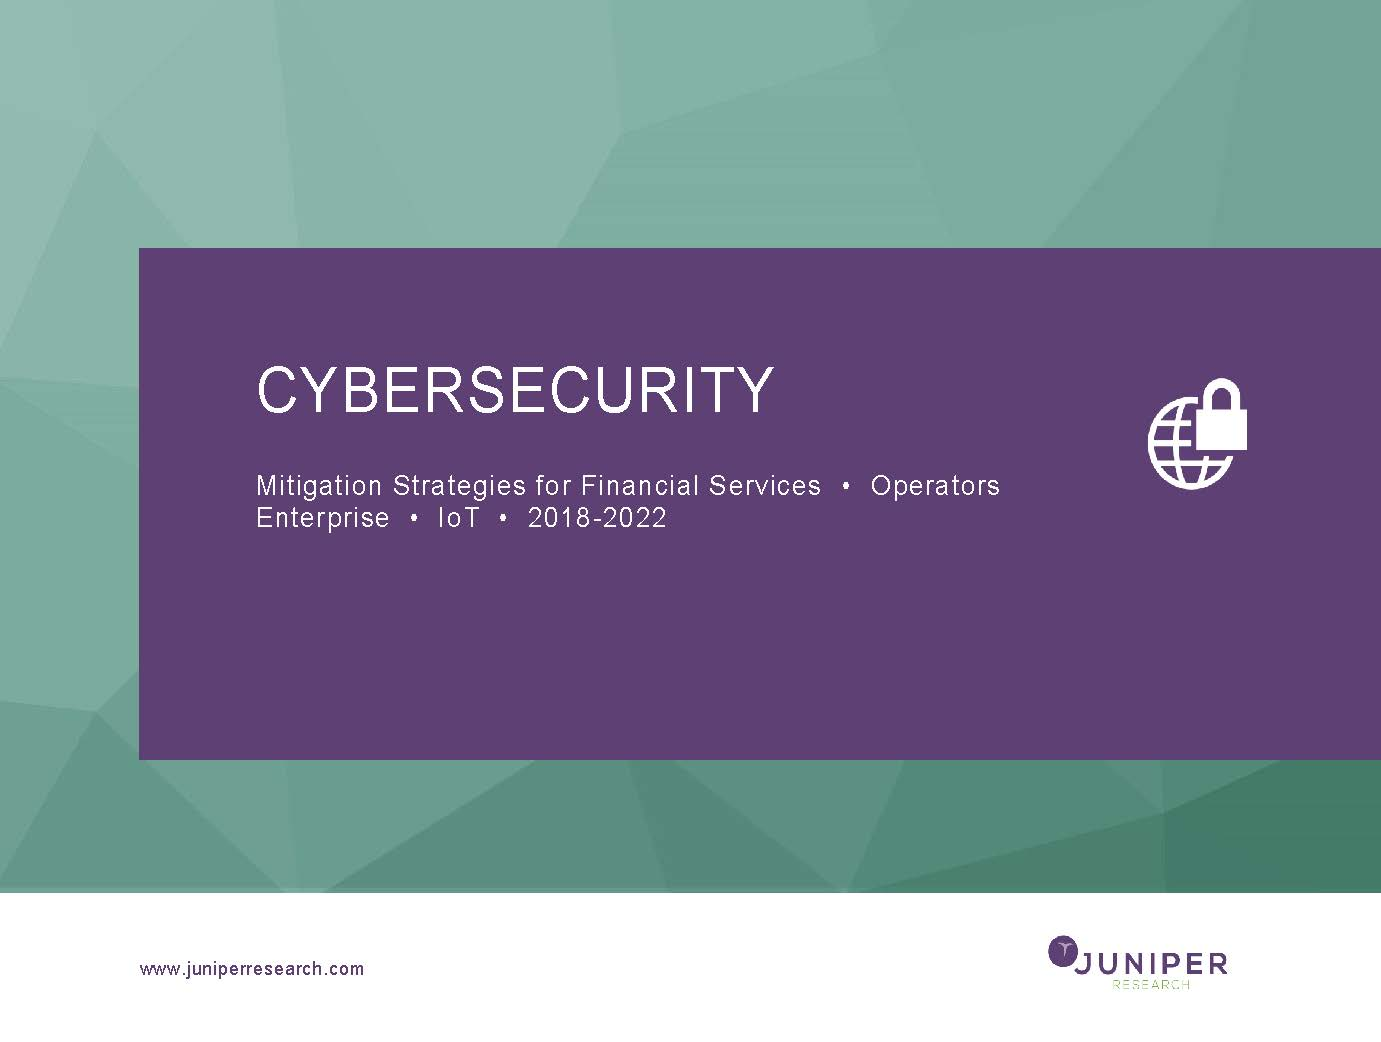 Cybersecurity: Mitigation Strategies for Financial Services, Operators, Enterprise & IOT